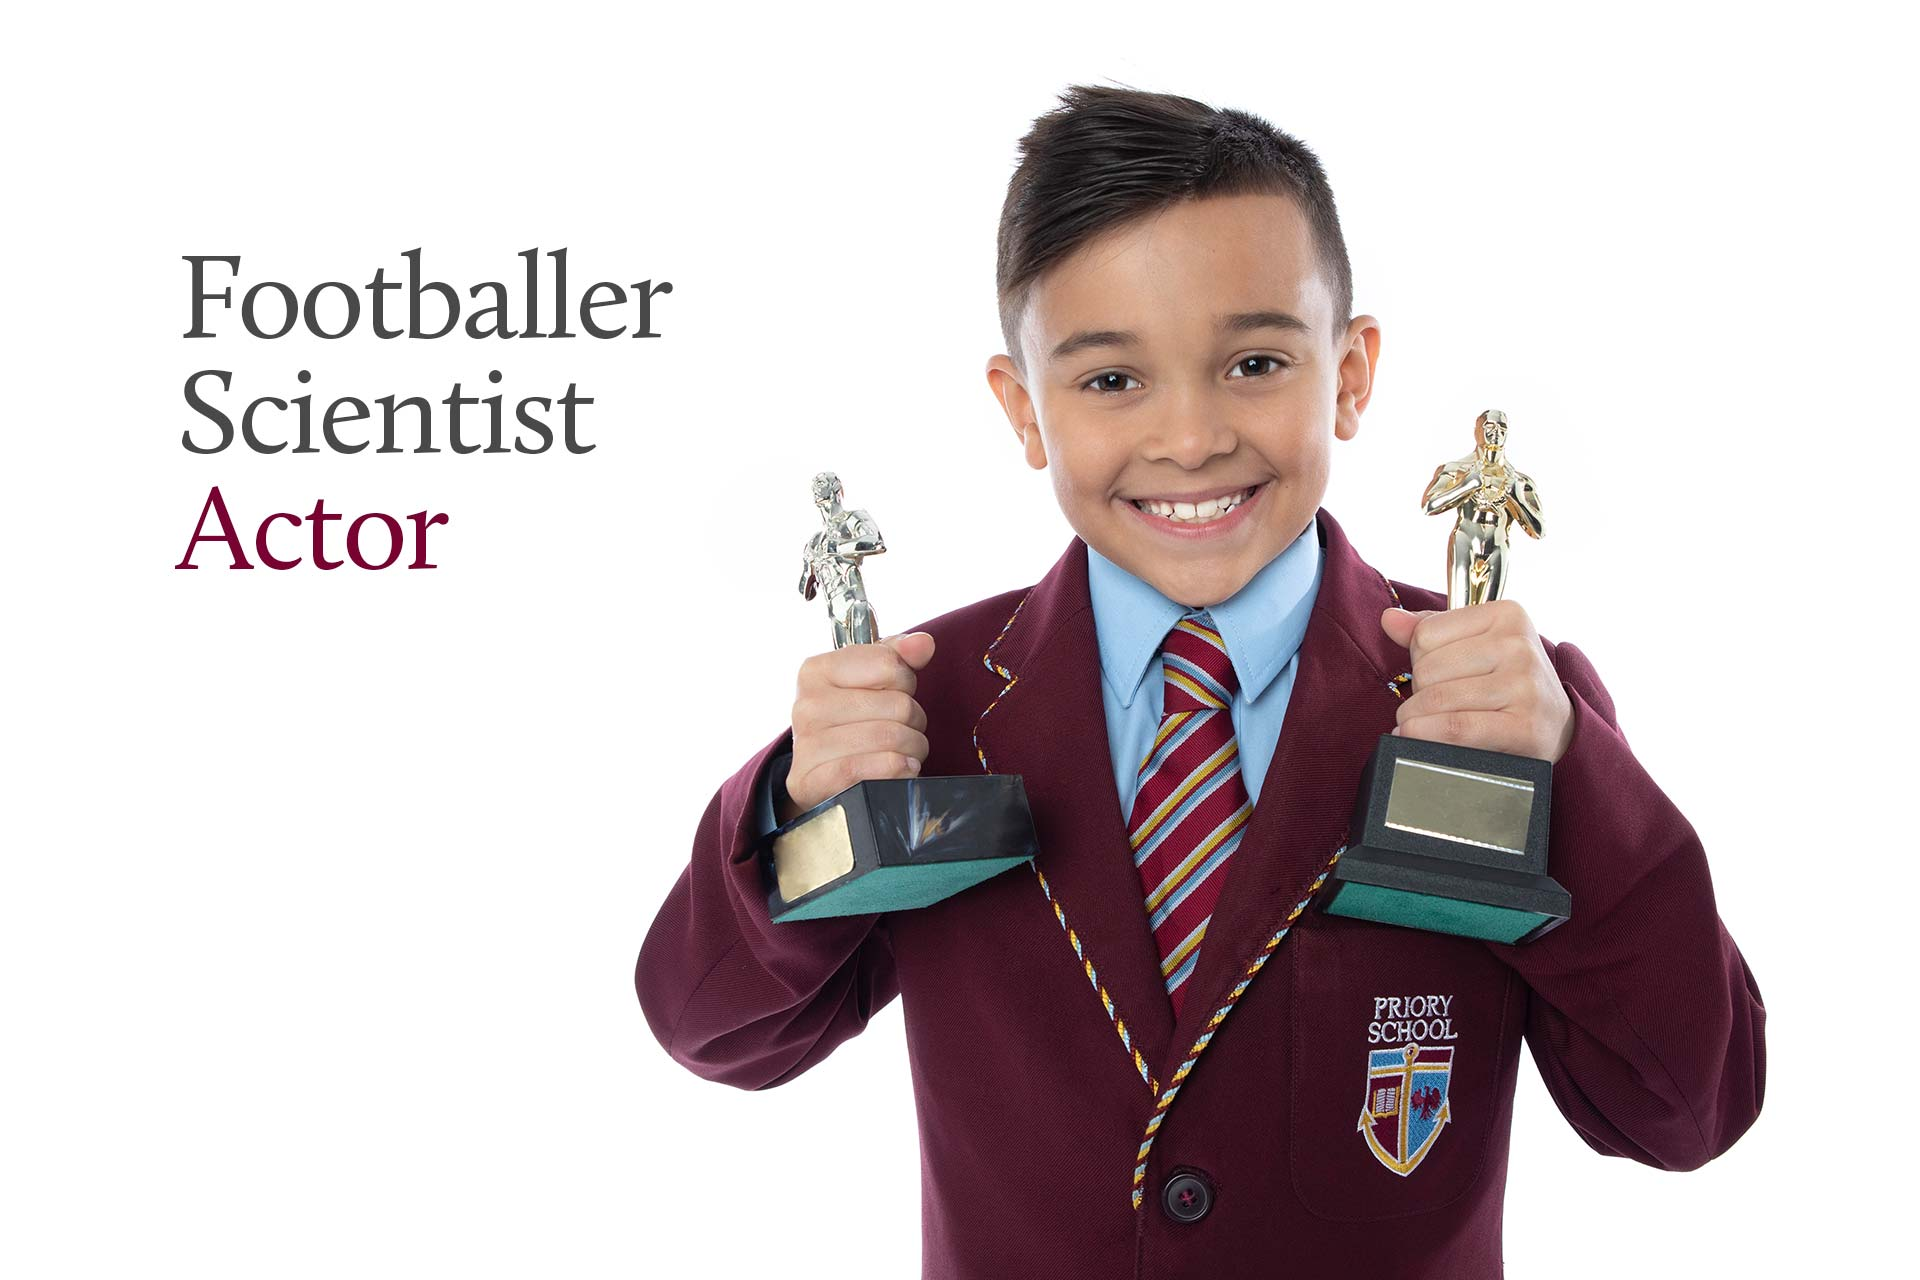 Priory School pupil holding academy awards